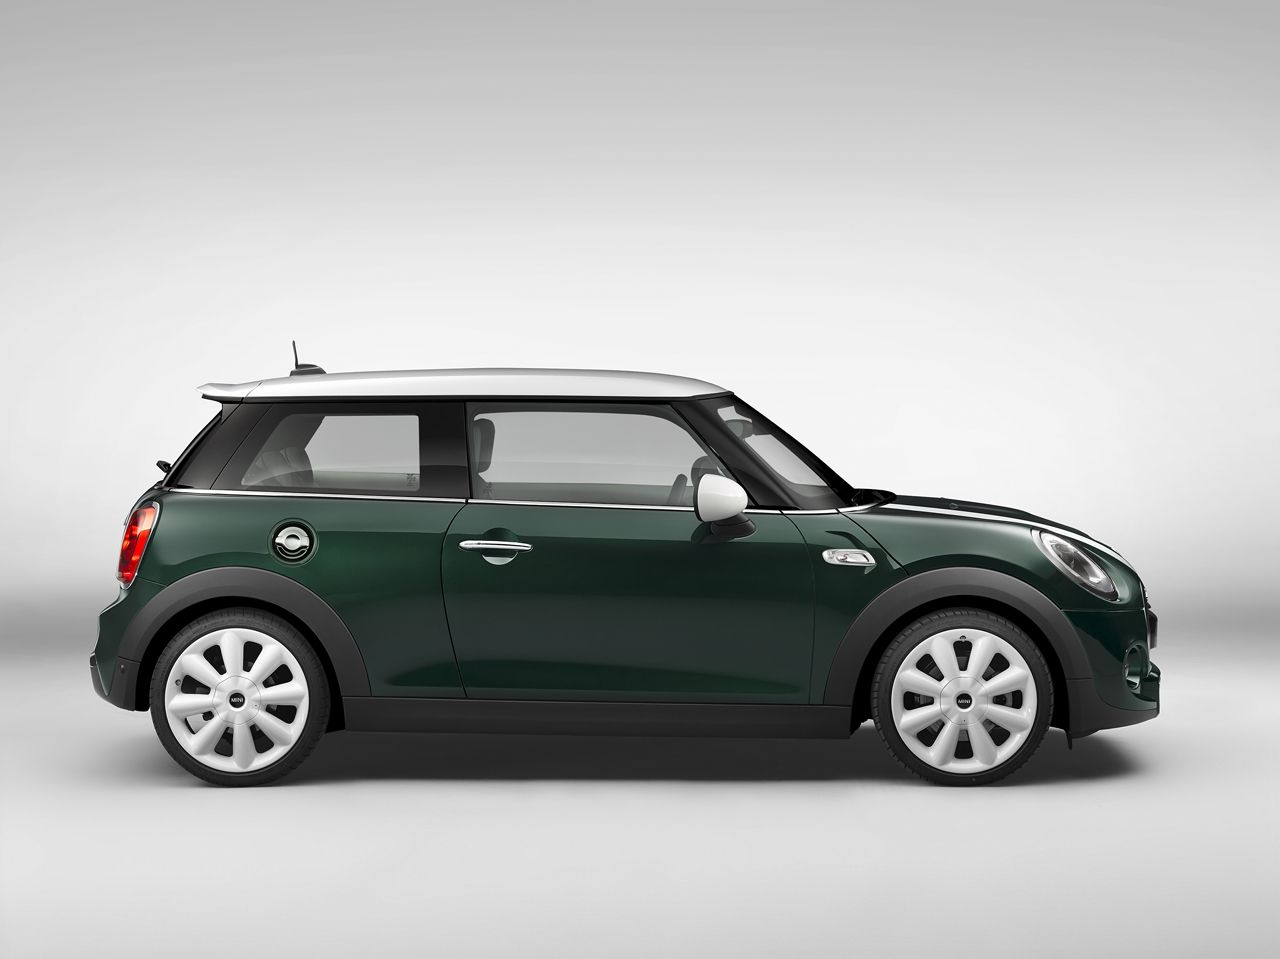 P90152364_f56_coopersd the new mini is voted best looking car of 2014 in